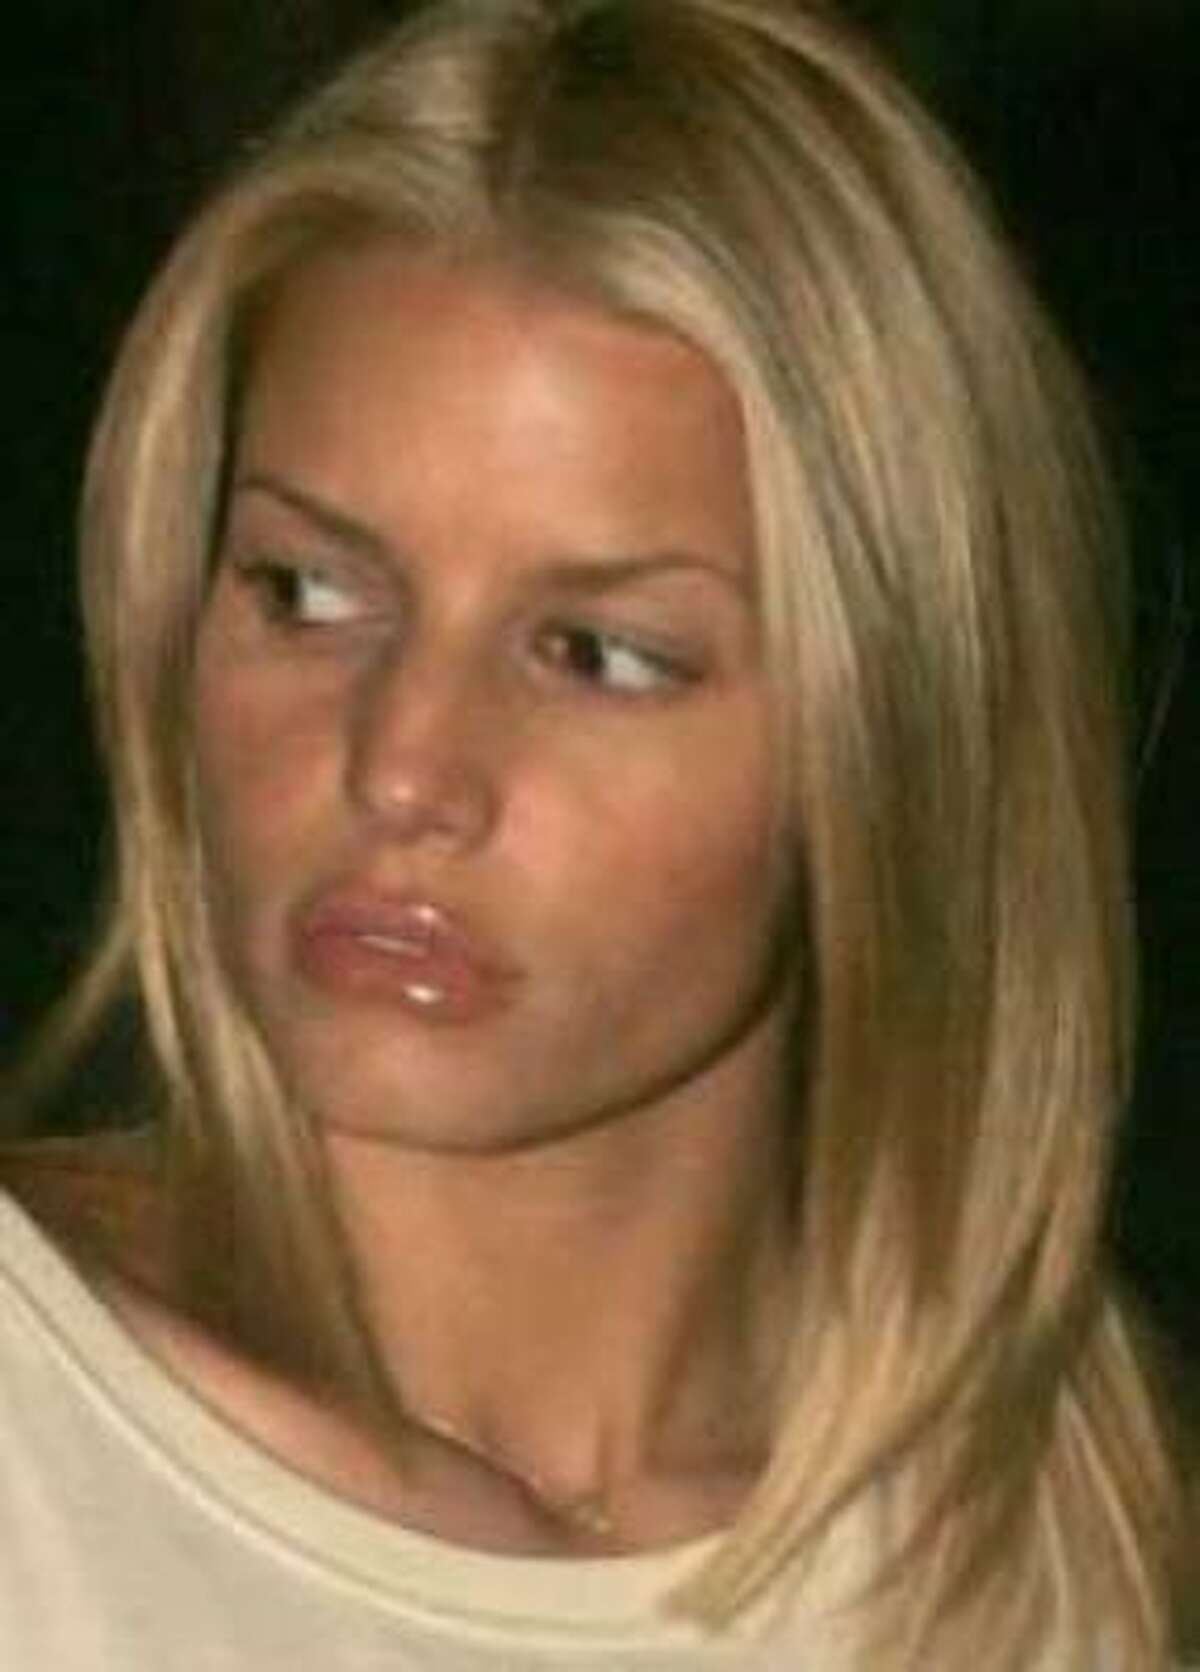 Jessica Simpson's lips were enhanced a little too much. Good thing lip injections aren't permanent.